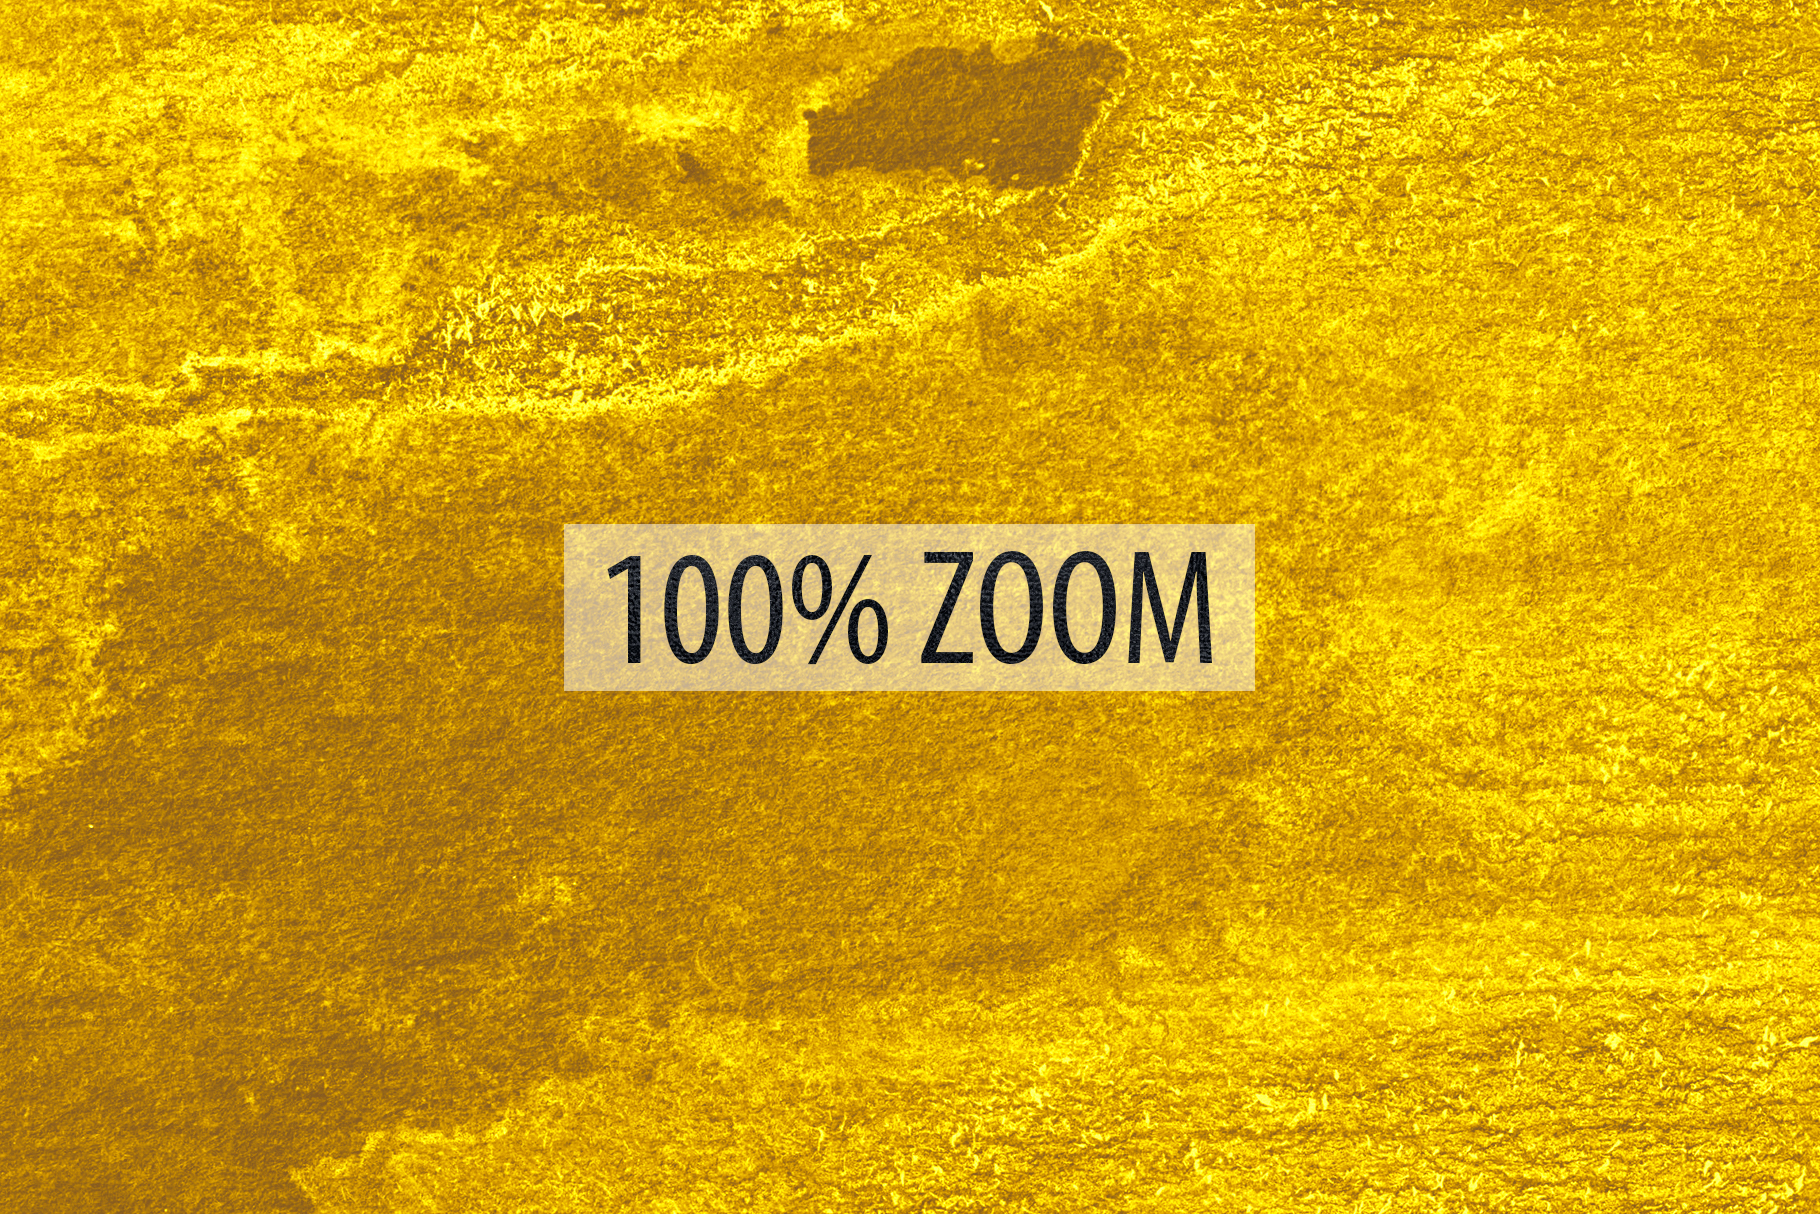 Gold Foil and Glitter Textures - Metallic Digital Papers example image 5